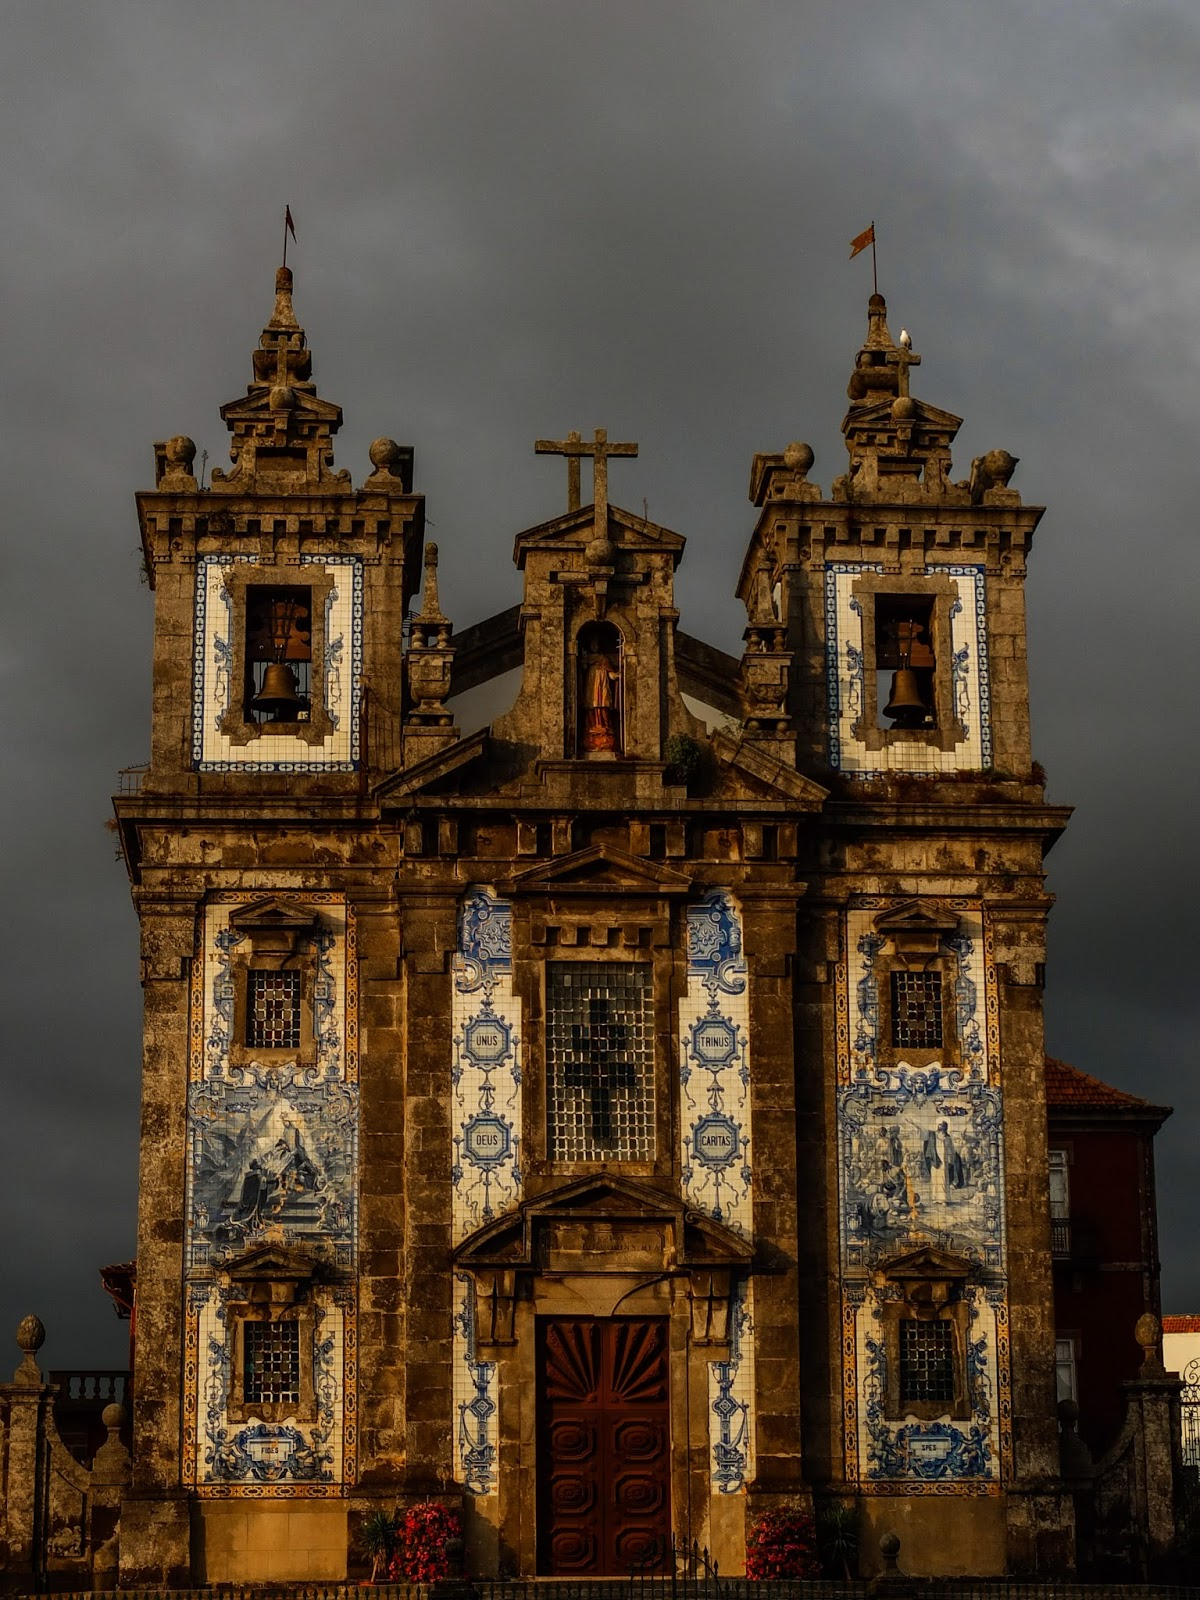 Church of Saint Ildefonso in Porto, Portugal at sunset.